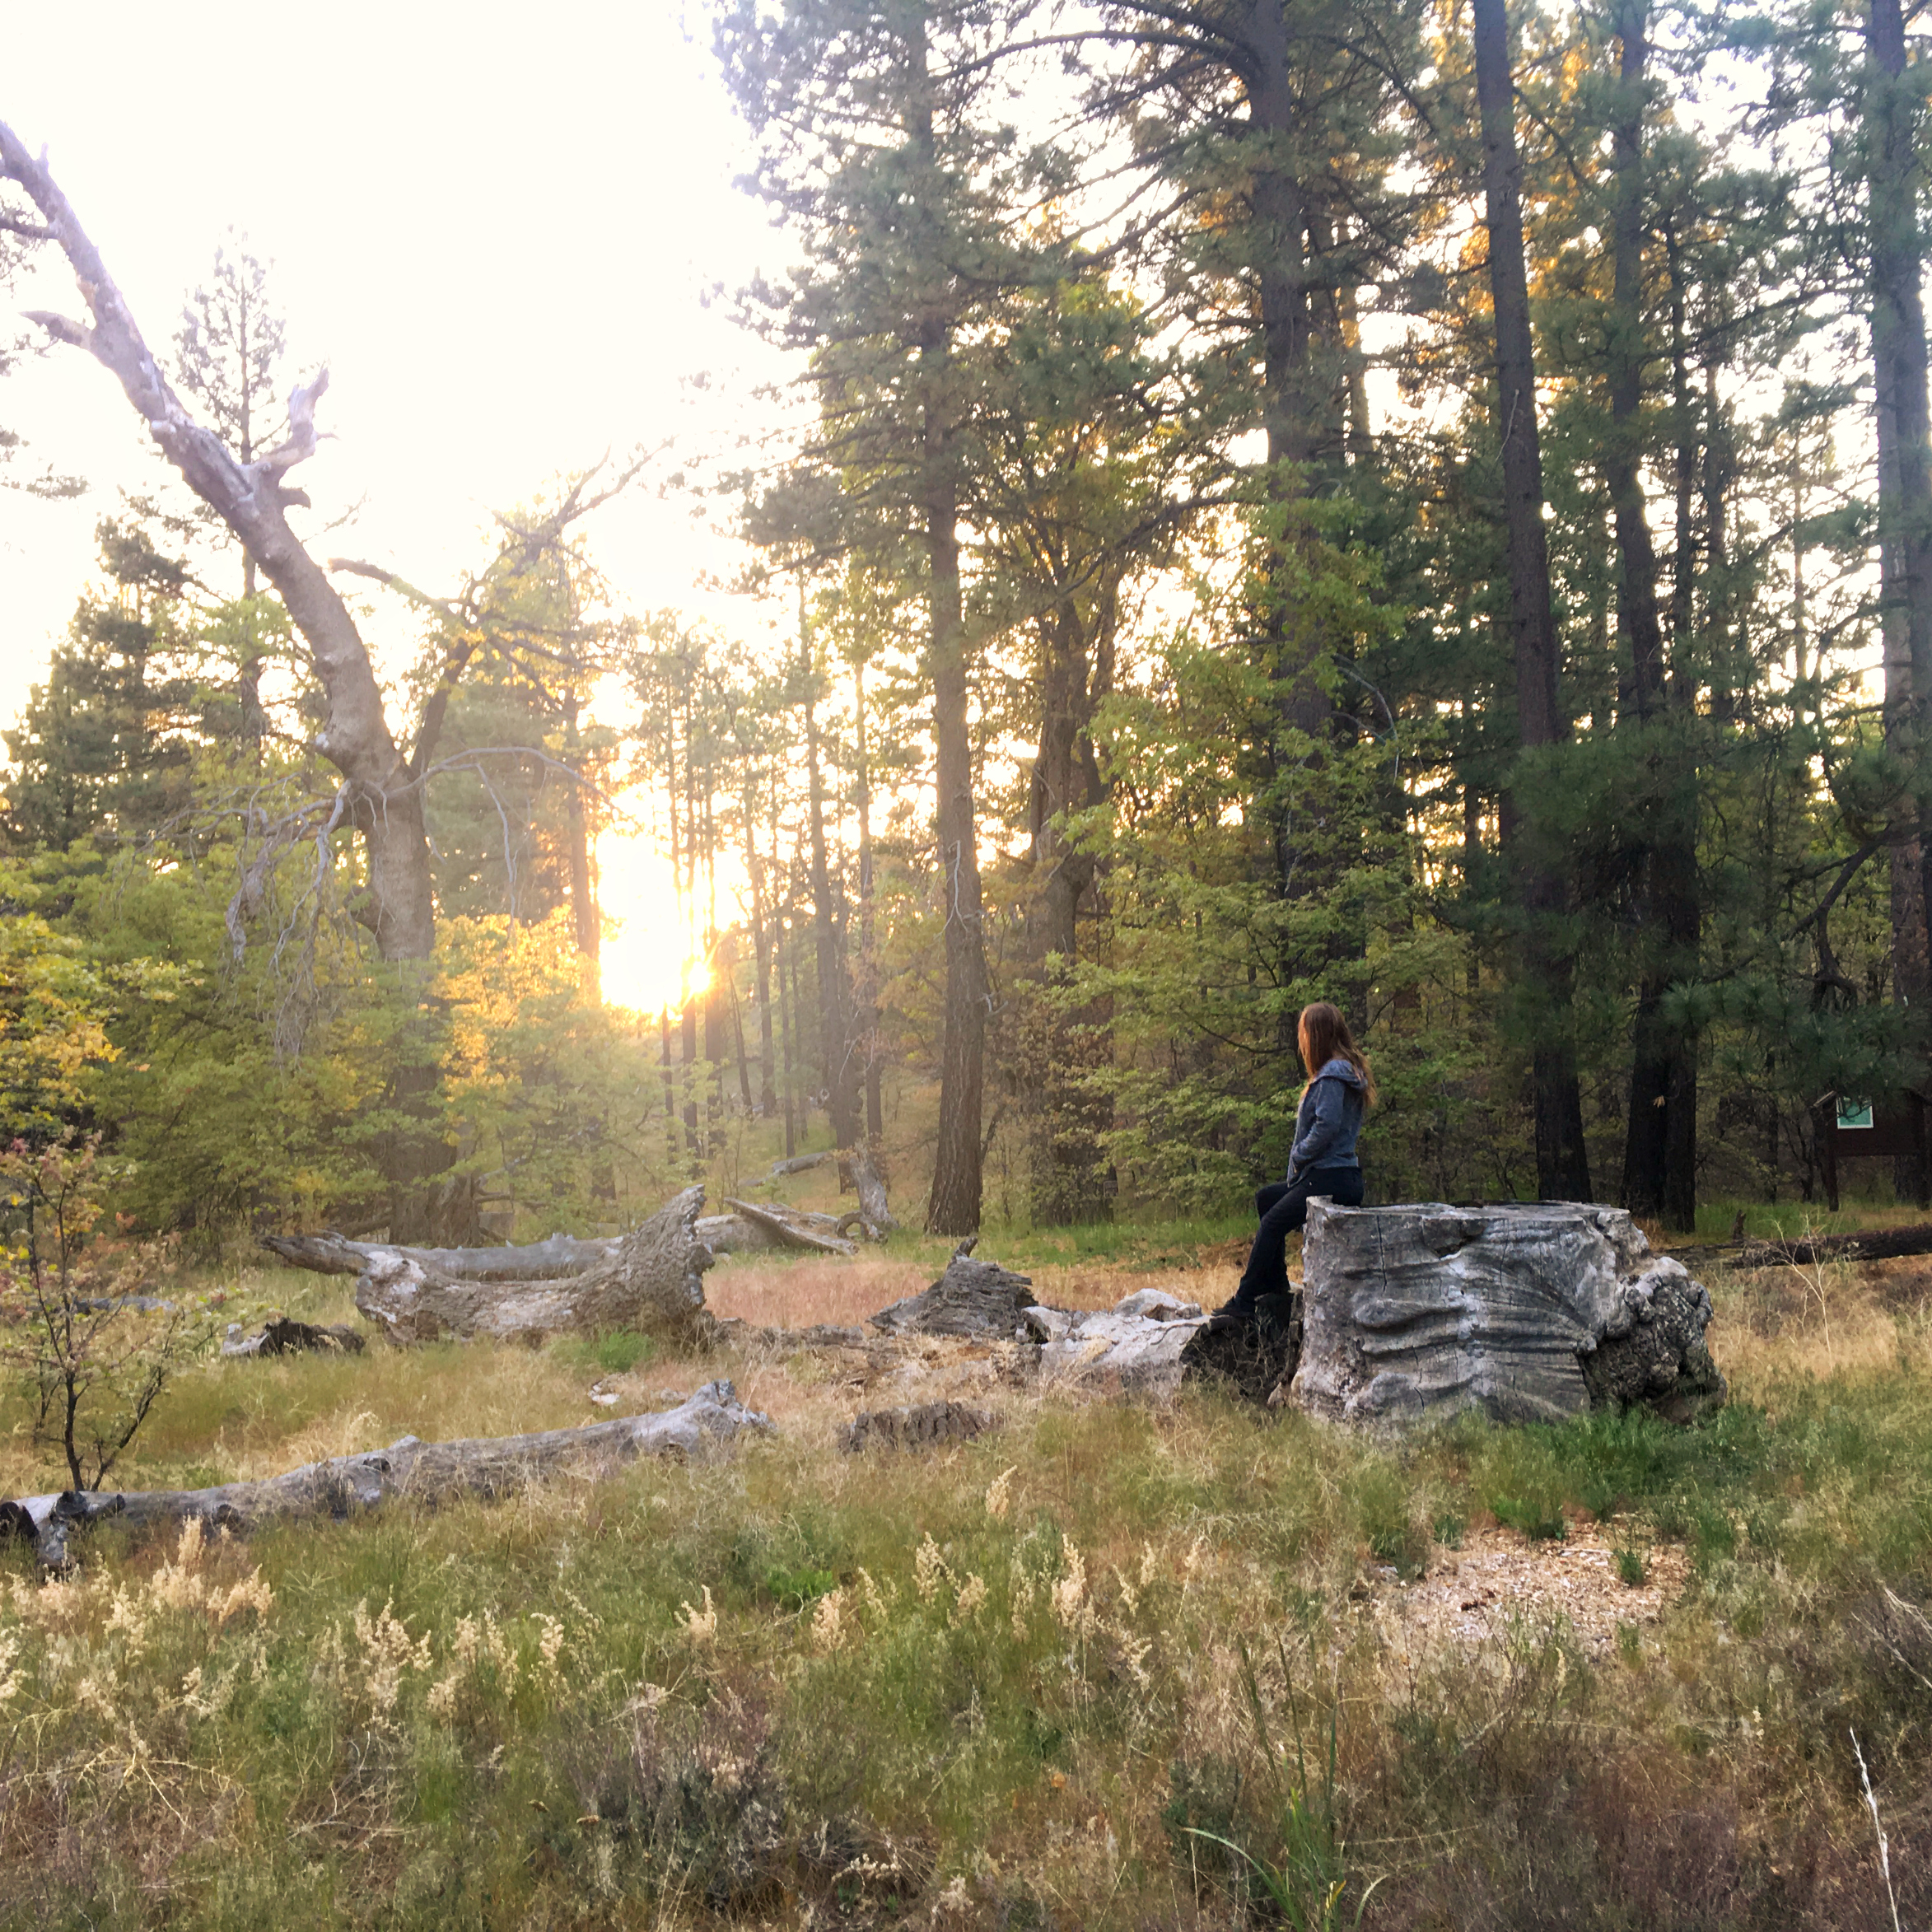 sunset, camping, hiking, glamping, outdoors, wilderness, nature, travel,